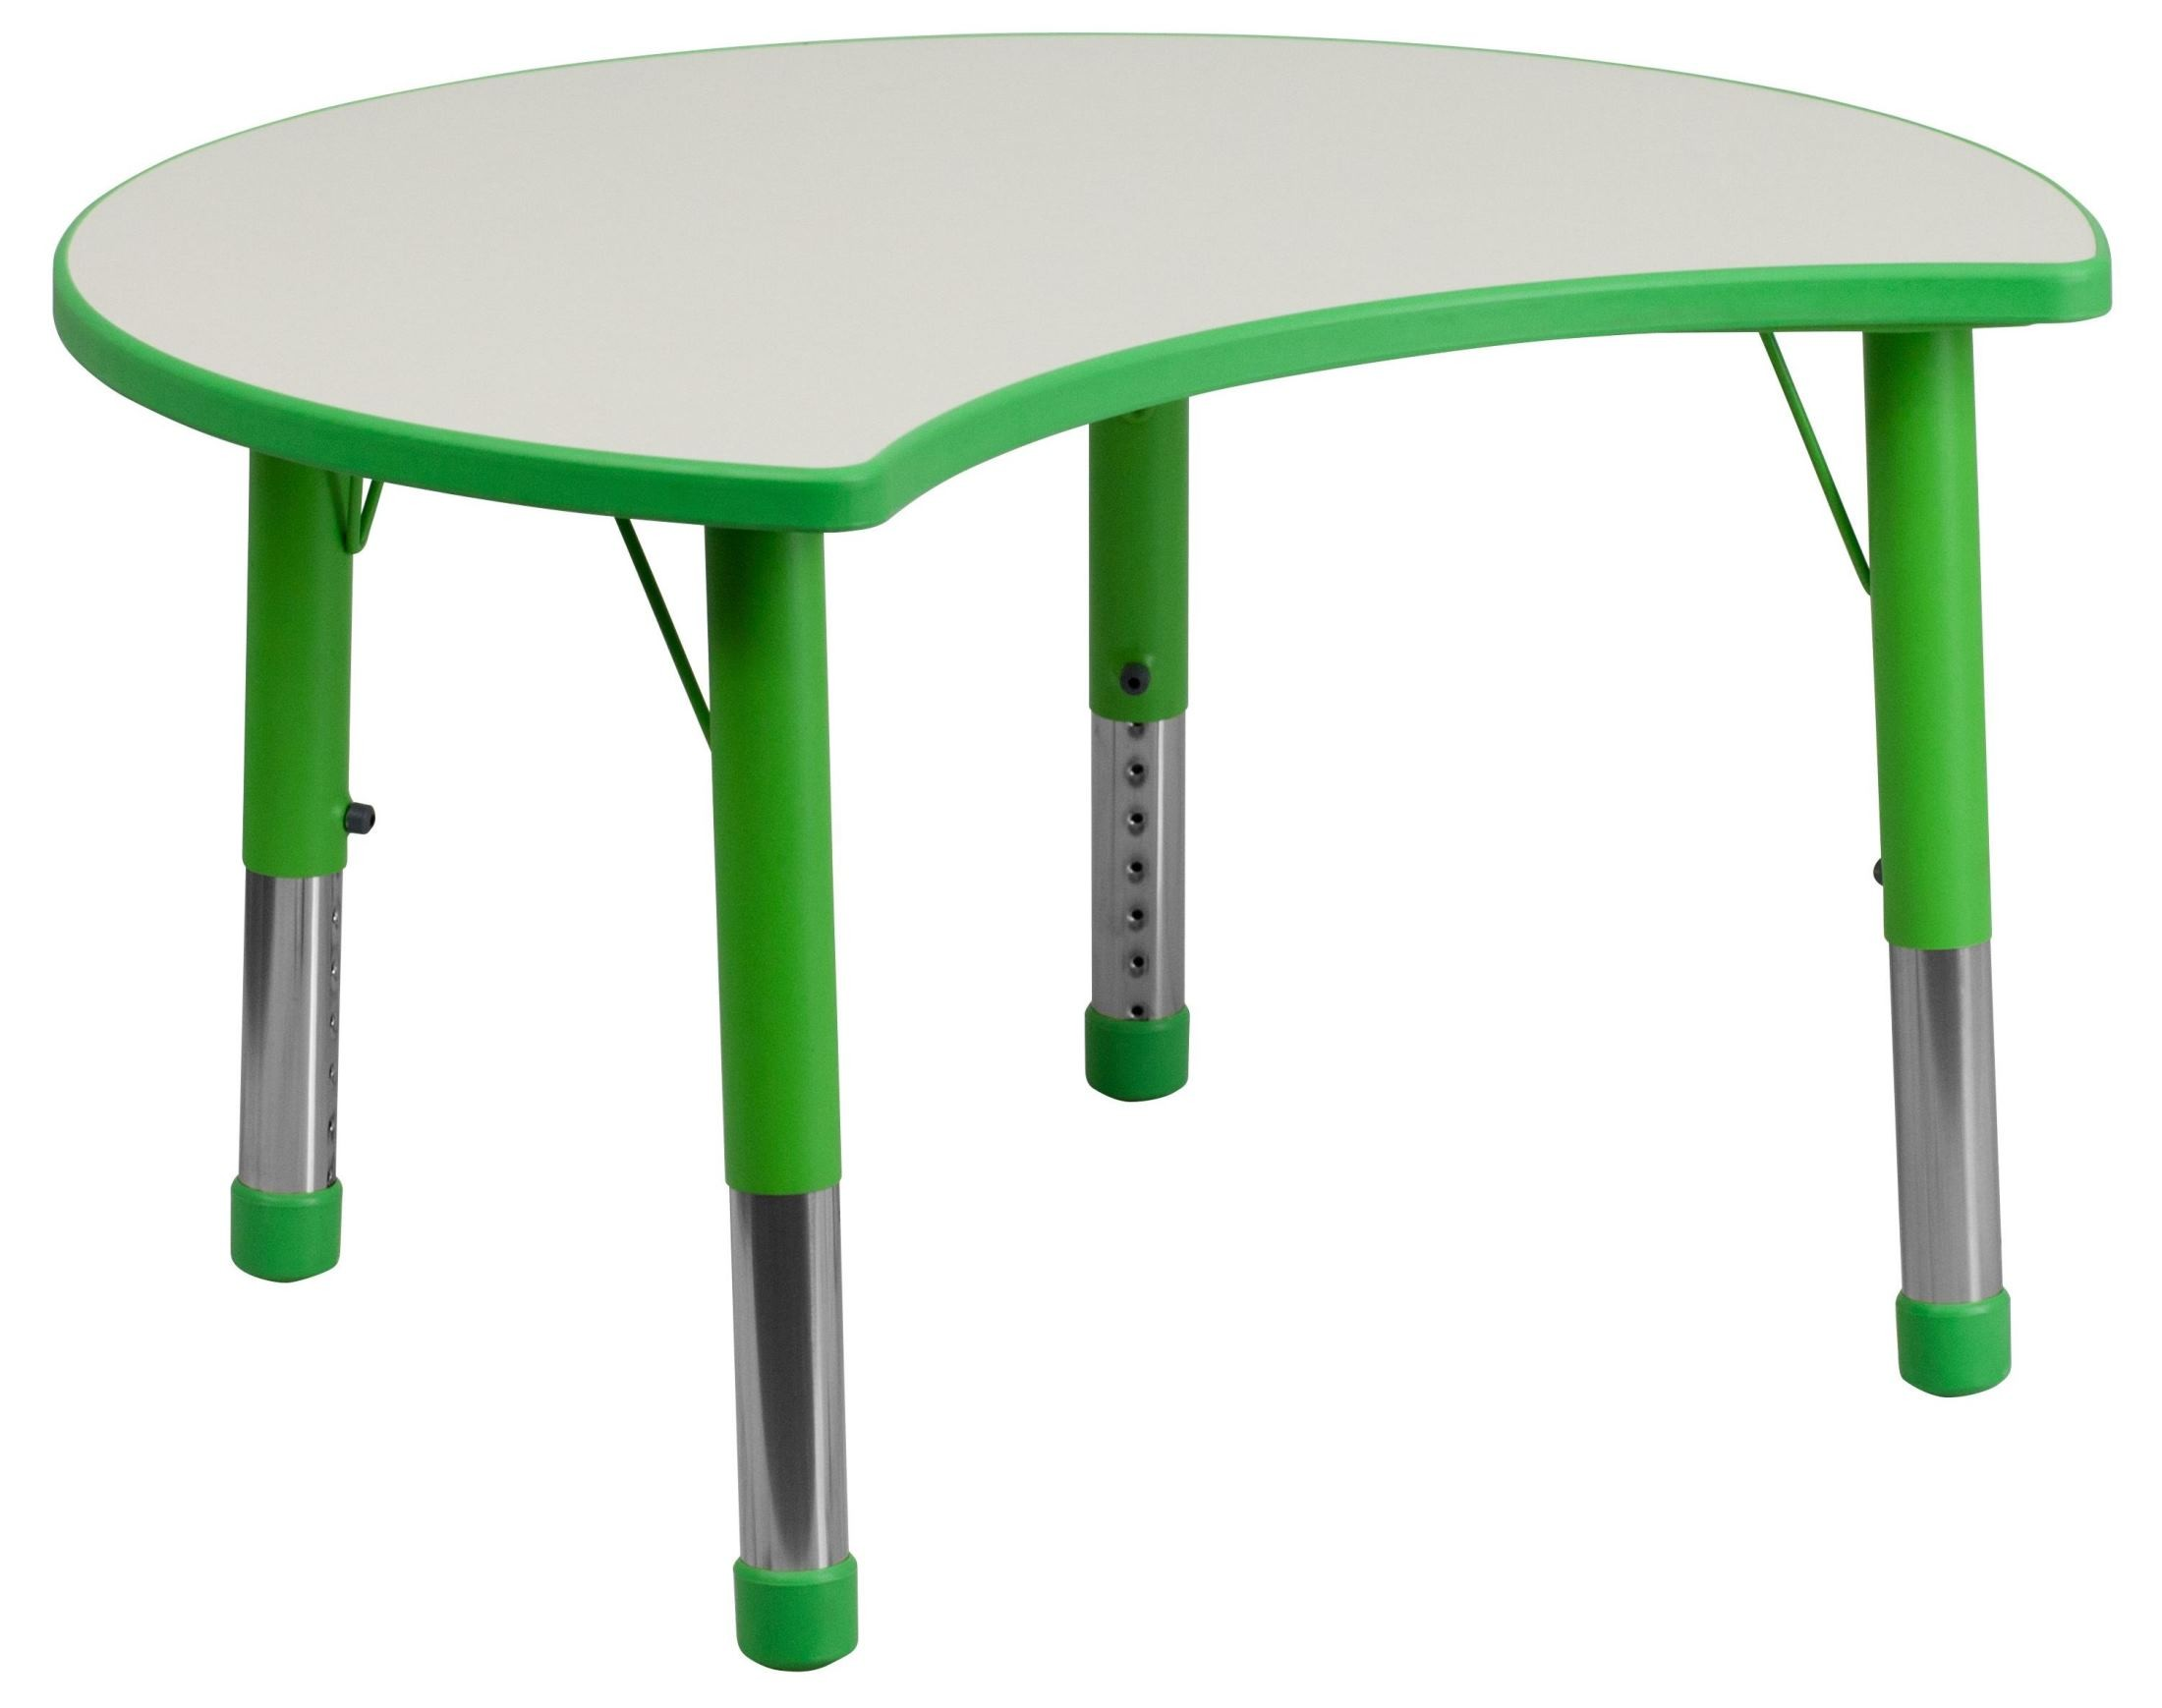 Adjustable Height Activity Table Adjustable Height Cutout Circle Green Plastic Activity